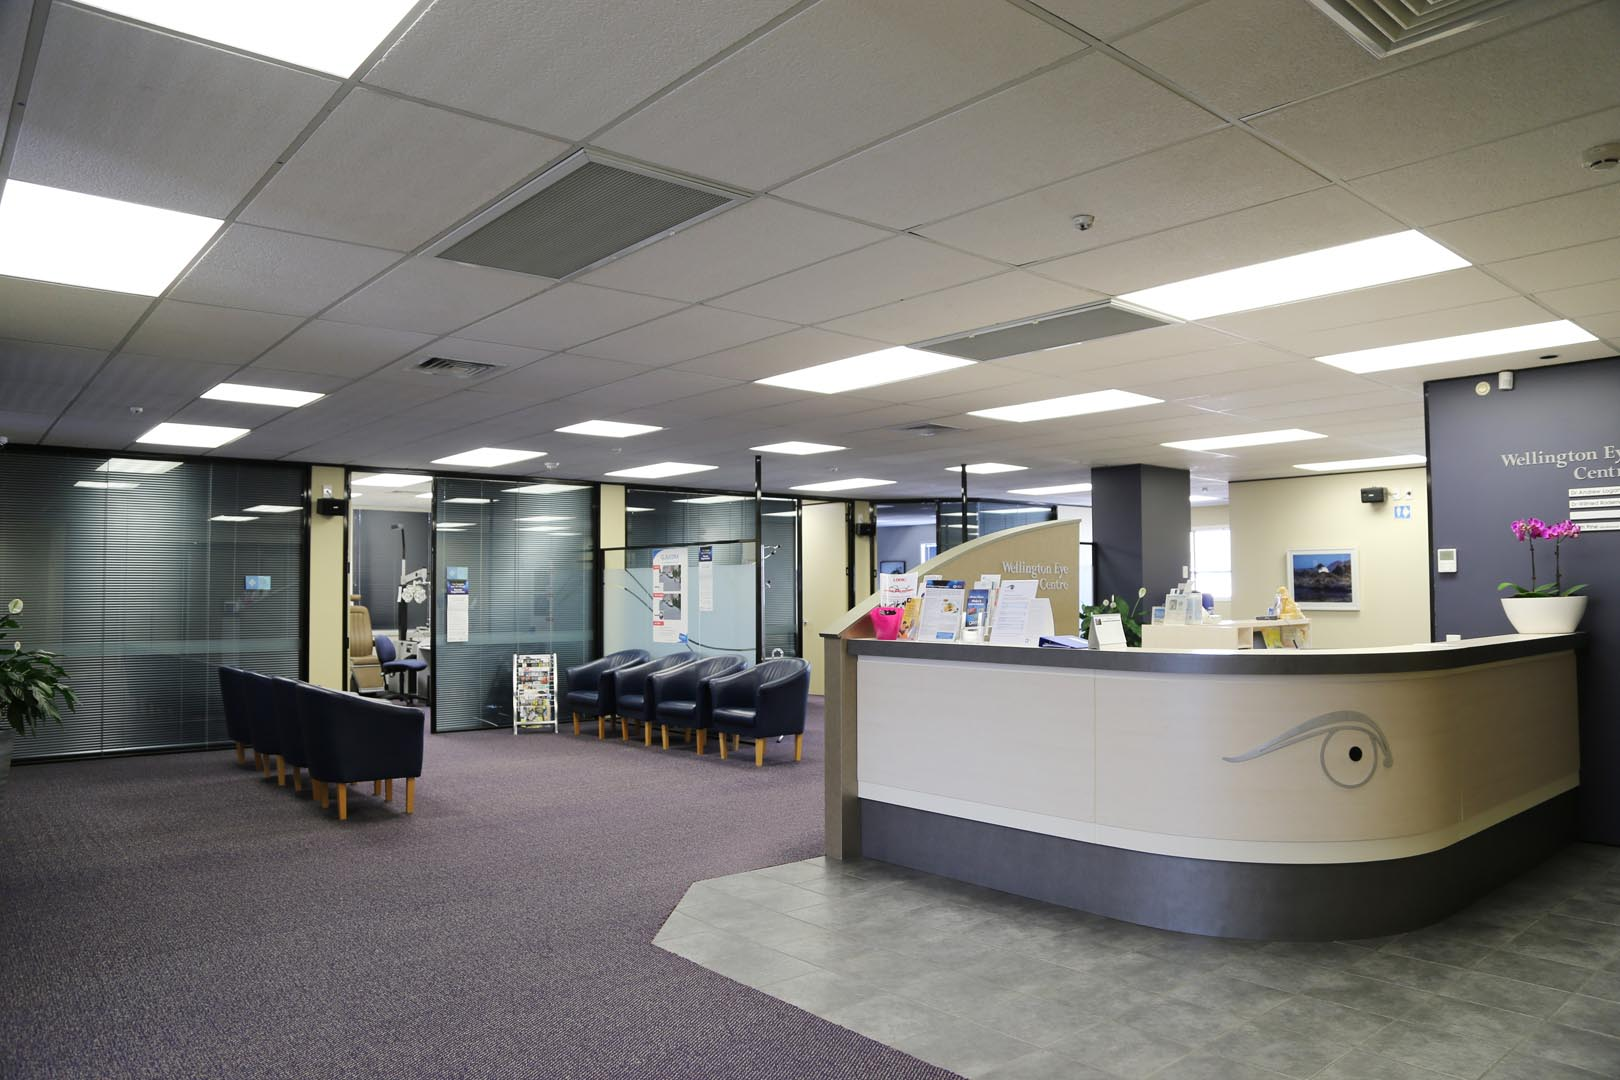 An Image of the Wellington Eye Centre Practice Reception in Wellington